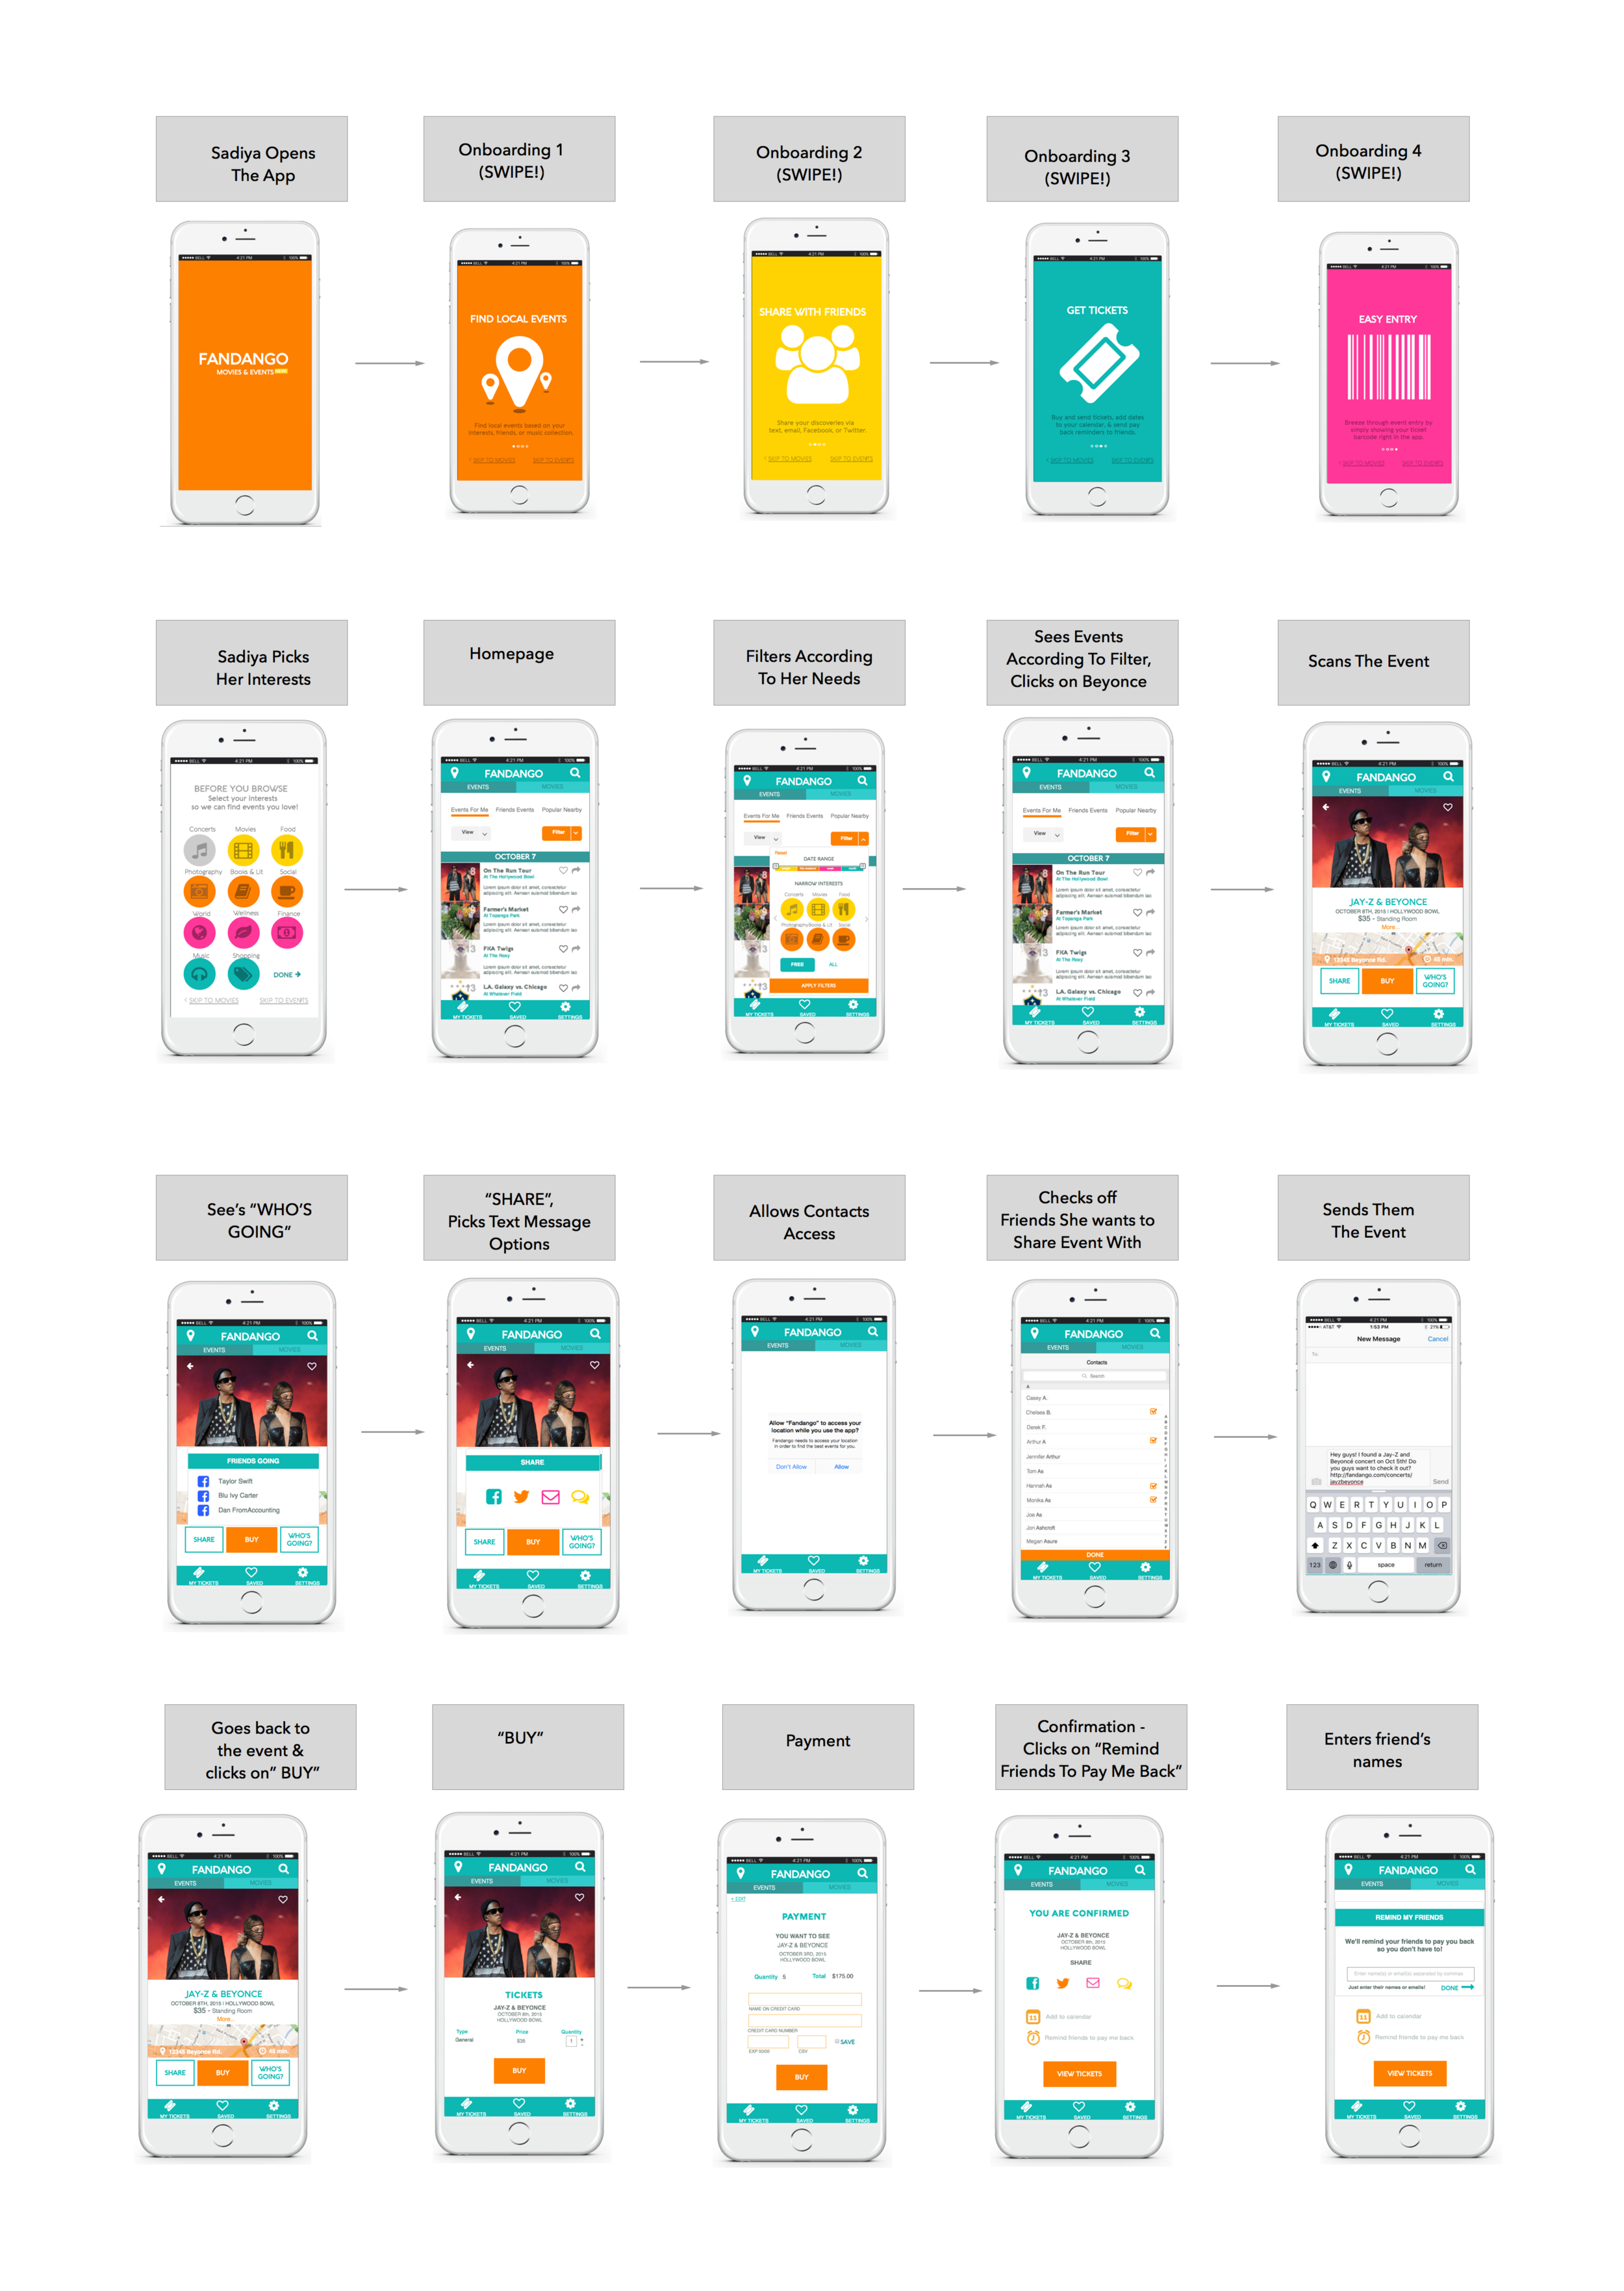 """IMAGE EXPLAINED:     Sadiya opens the app and receives onboarding with a value proposition.She then picks her interests, so the app can reveal only events that are customized to events she likes.    She hits the homepage and filters events by: (1) the necessary time period, (2) the cost (""""free"""" or """"all""""), and (3) the type.She chooses an event,see's """"Who's Going"""", and shares it through text message with her friends coming to town, to make sure they want to go, too.     Once they confirm (not pictured), she opens the app again to buy the tickets.She recieves a confirmation, and then sends pay-me-back reminders to her friends.    *She can eventually access her tickets in the QR code by clicking on """"My Tickets"""" in the navigation bar. This is not pictured, but is clickable in the prototype."""